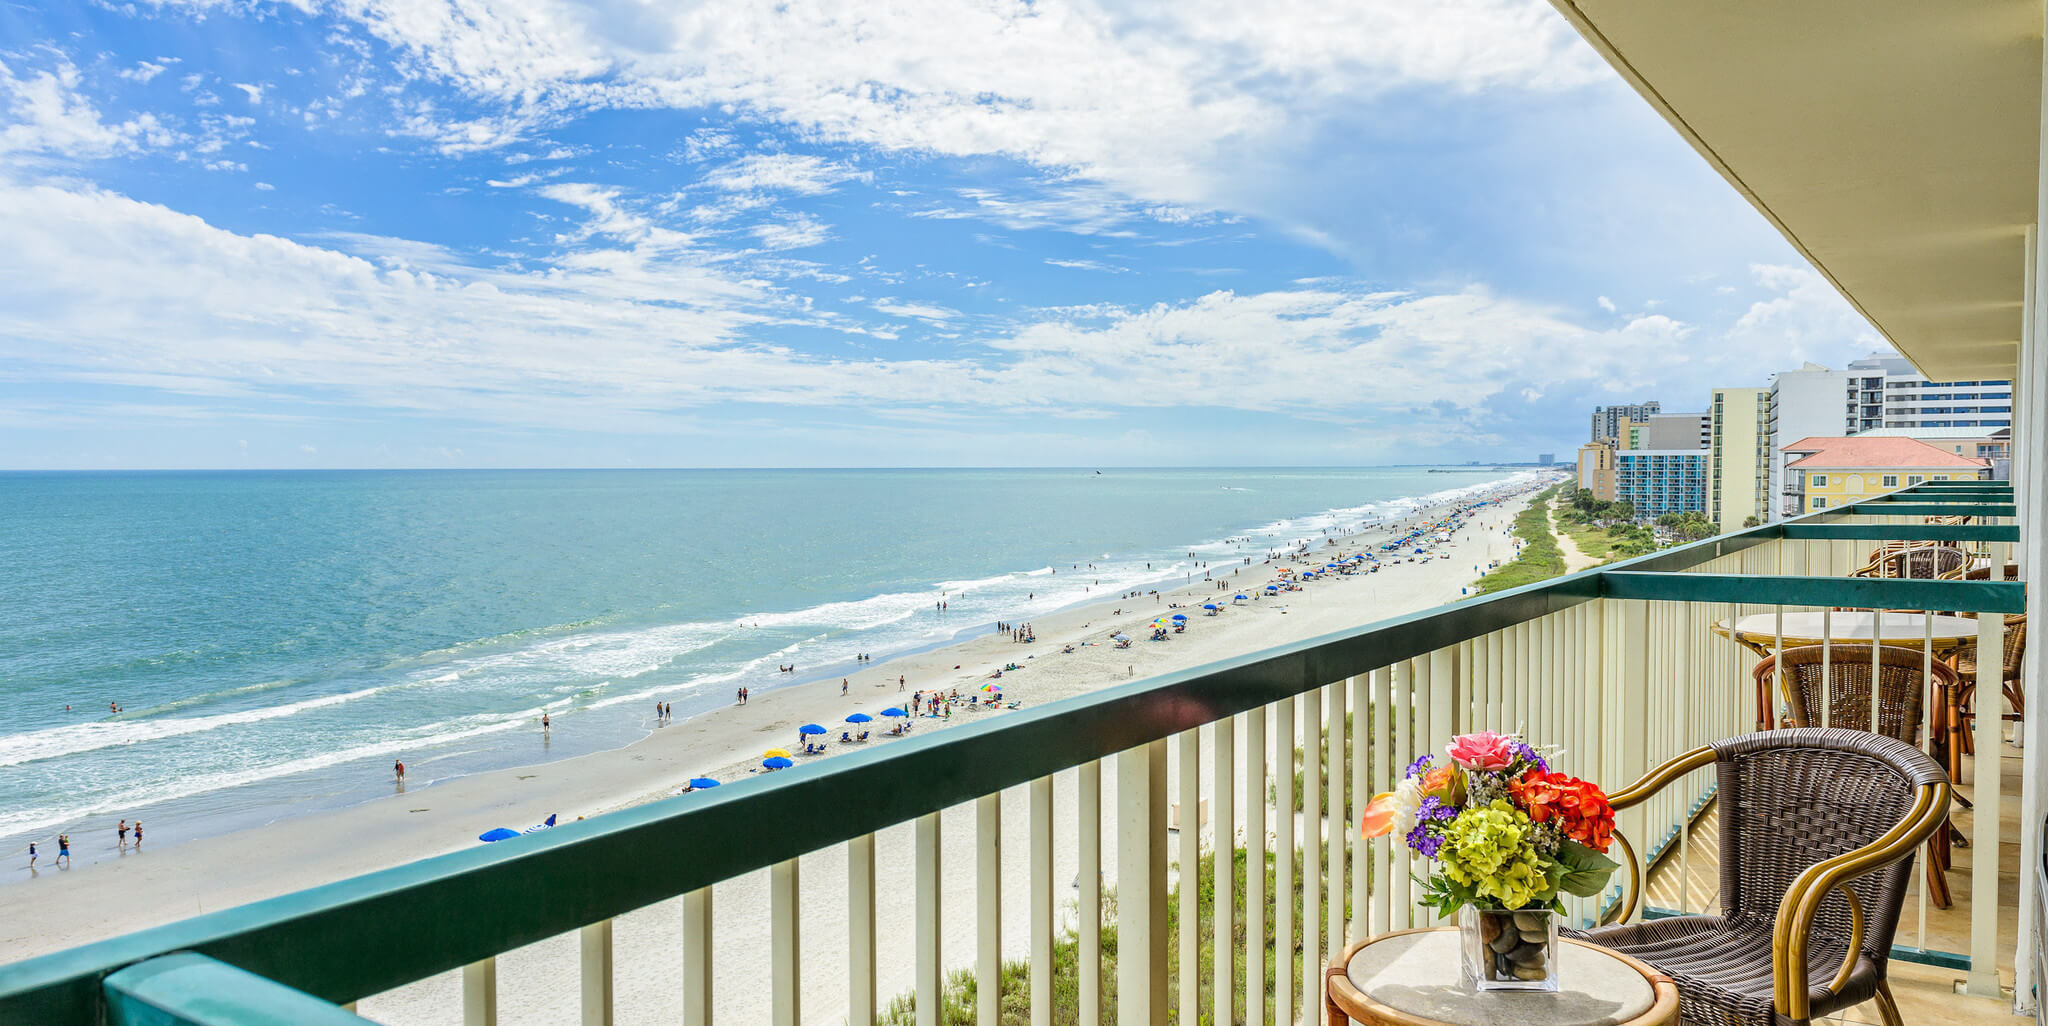 Aaa Myrtle Beach Vacation Packages The Best Beaches In World